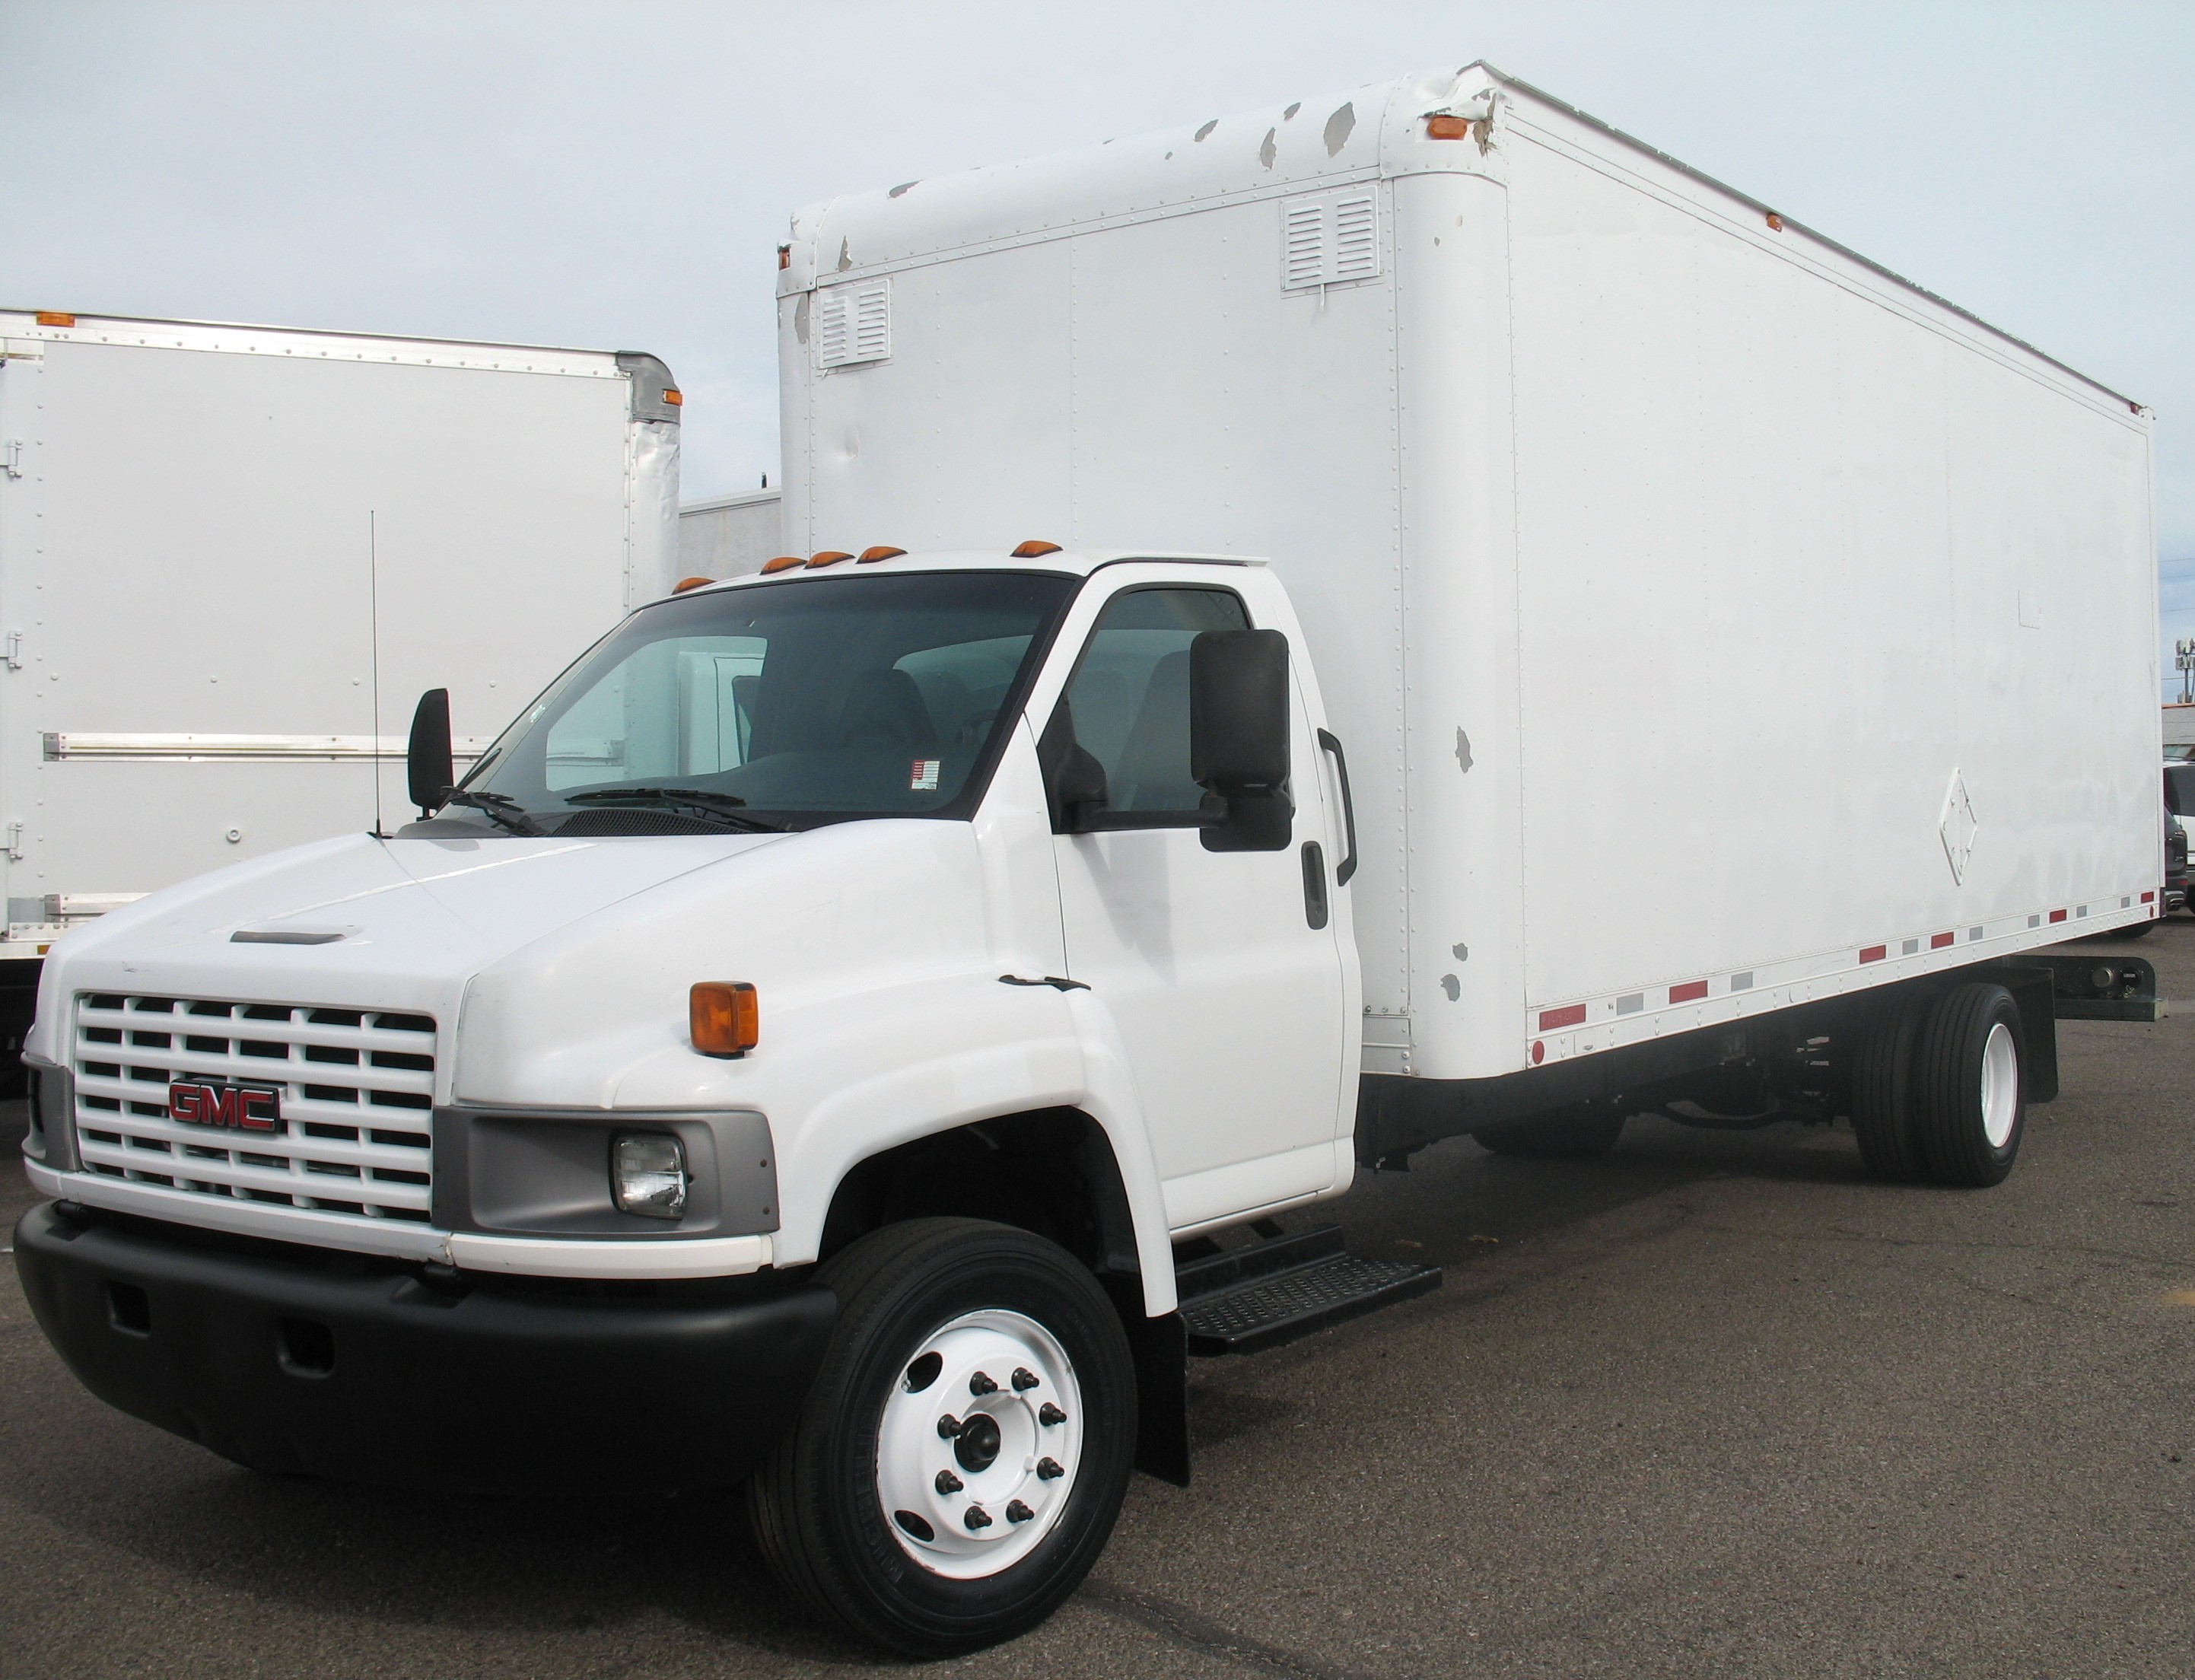 Used, 2006, GMC, C-5500 Topkick, Van Trucks